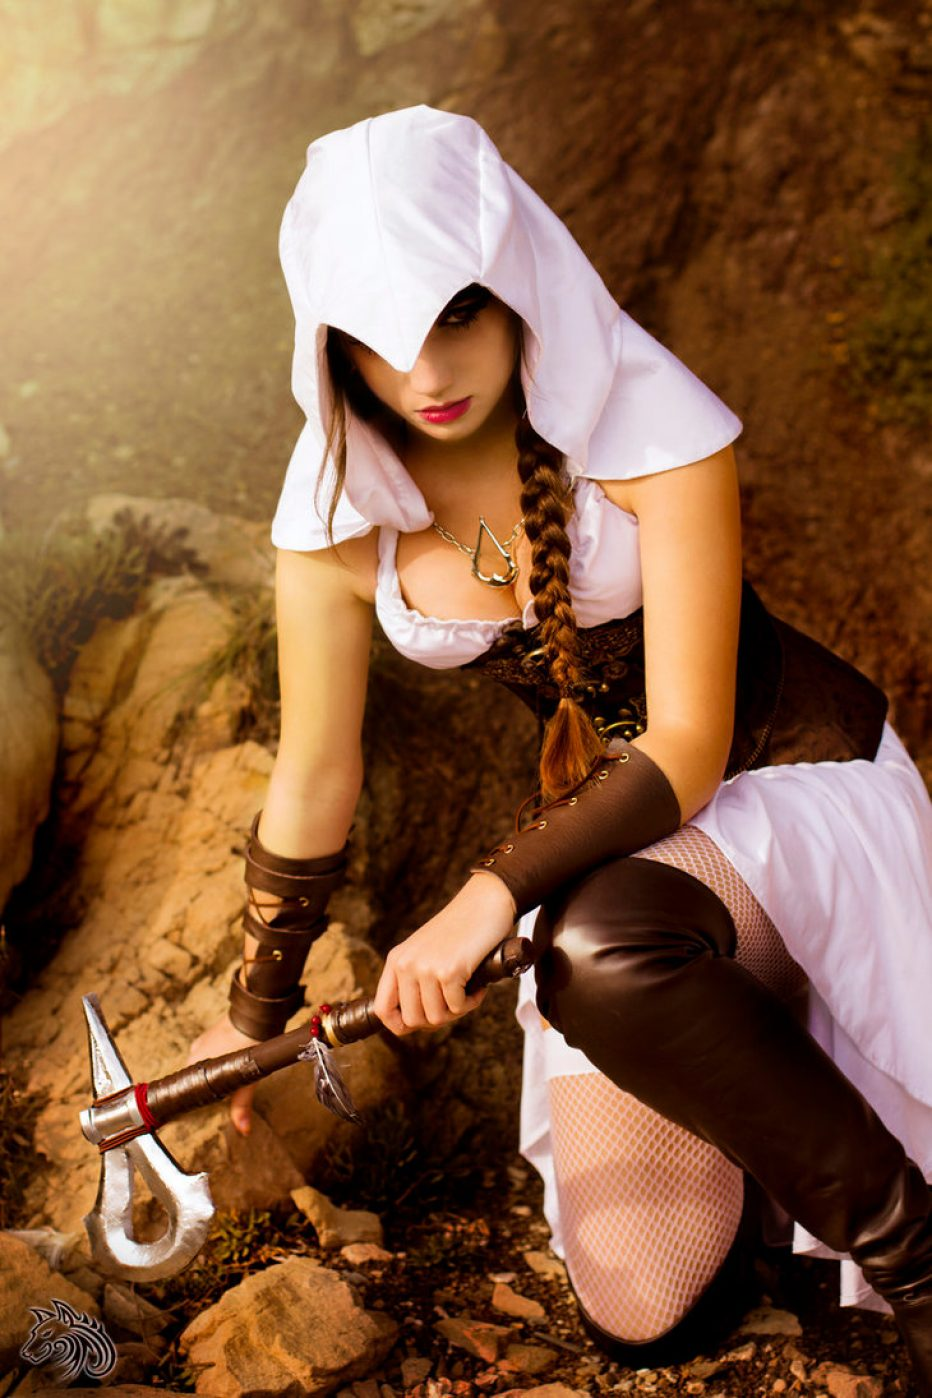 Assassins-Creed-Female-Cosplay-Gamers-Heroes-1.jpg